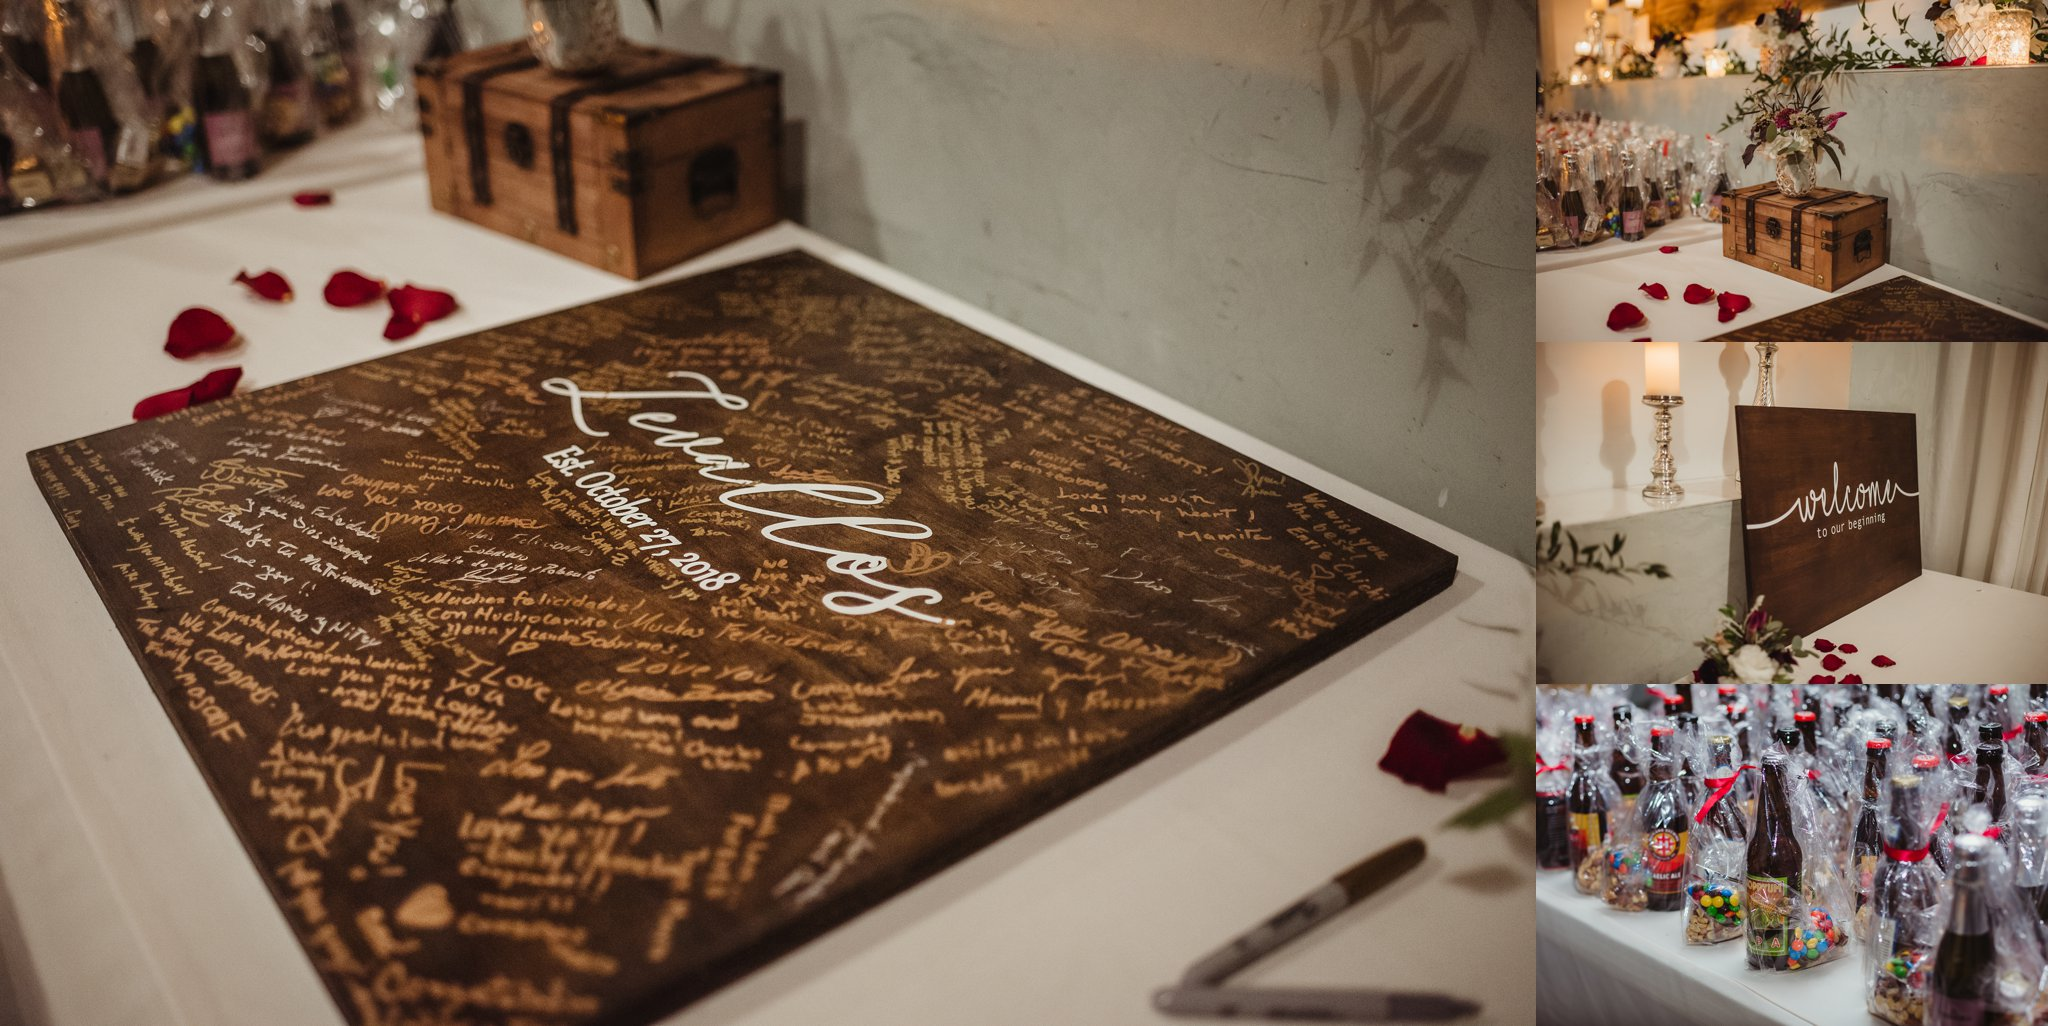 Details from the wedding reception in downtown Raleigh include a wooden sign for guests to sign, beer and nuts as a wedding favor, and the beautiful chest given to the bride that day by her groom, photos by Rose Trail Images.